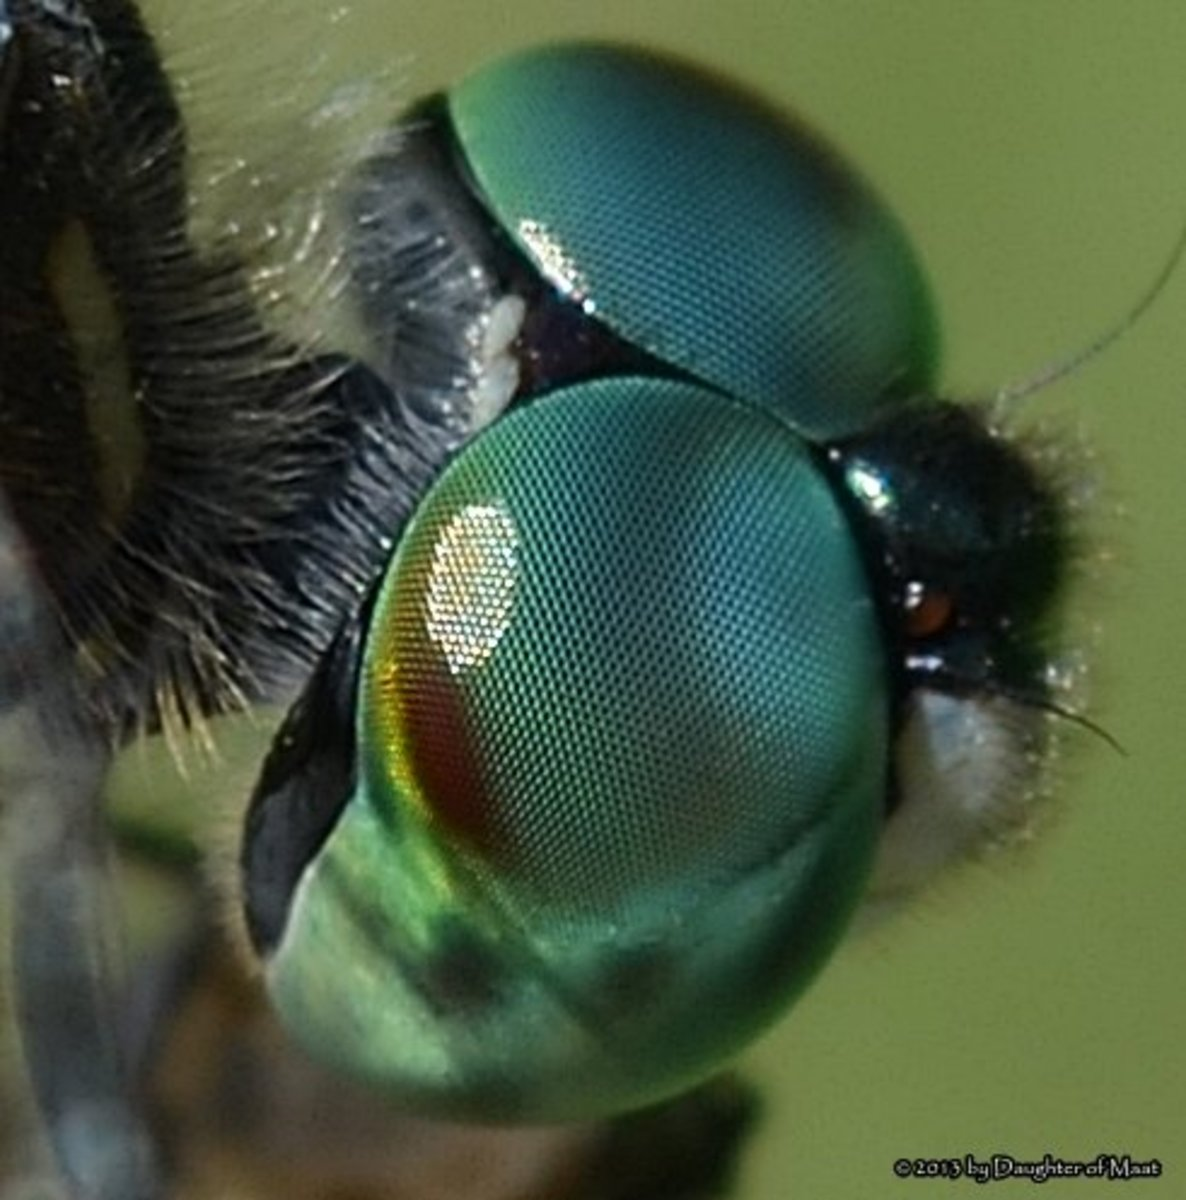 A closeup of the compound eyes of a blue dasher dragonfly.